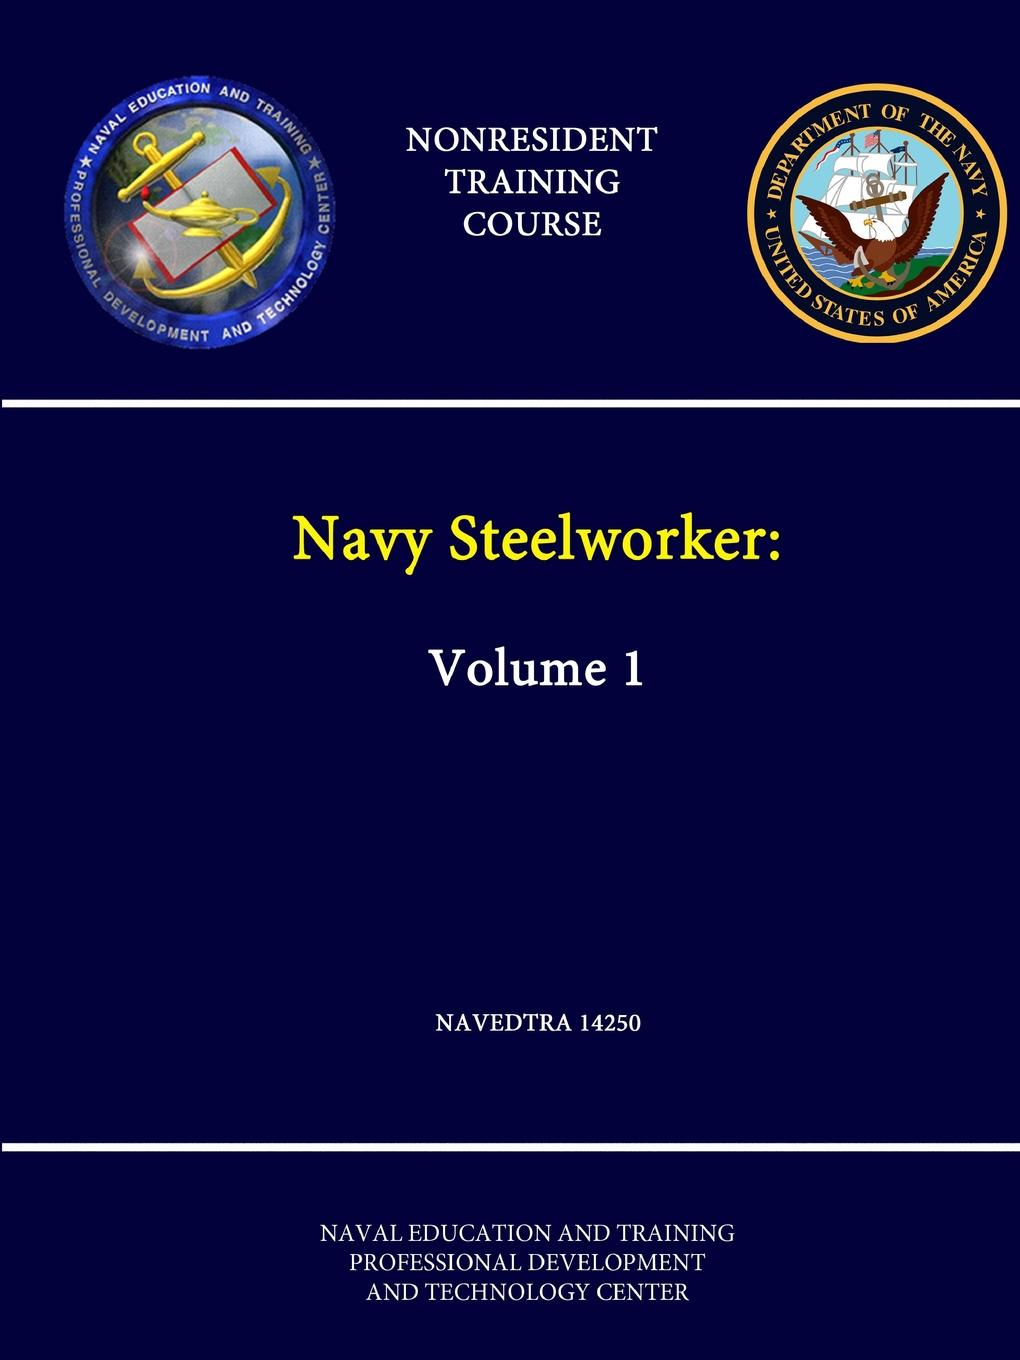 Naval Education & Training Center Navy Steelworker. Volume 1 - NAVEDTRA 14250 - (Nonresident Training Course) ydt shenzhen mig250f carbon dioxide gas shielded welding machine motherboard co2 two welding circuit board